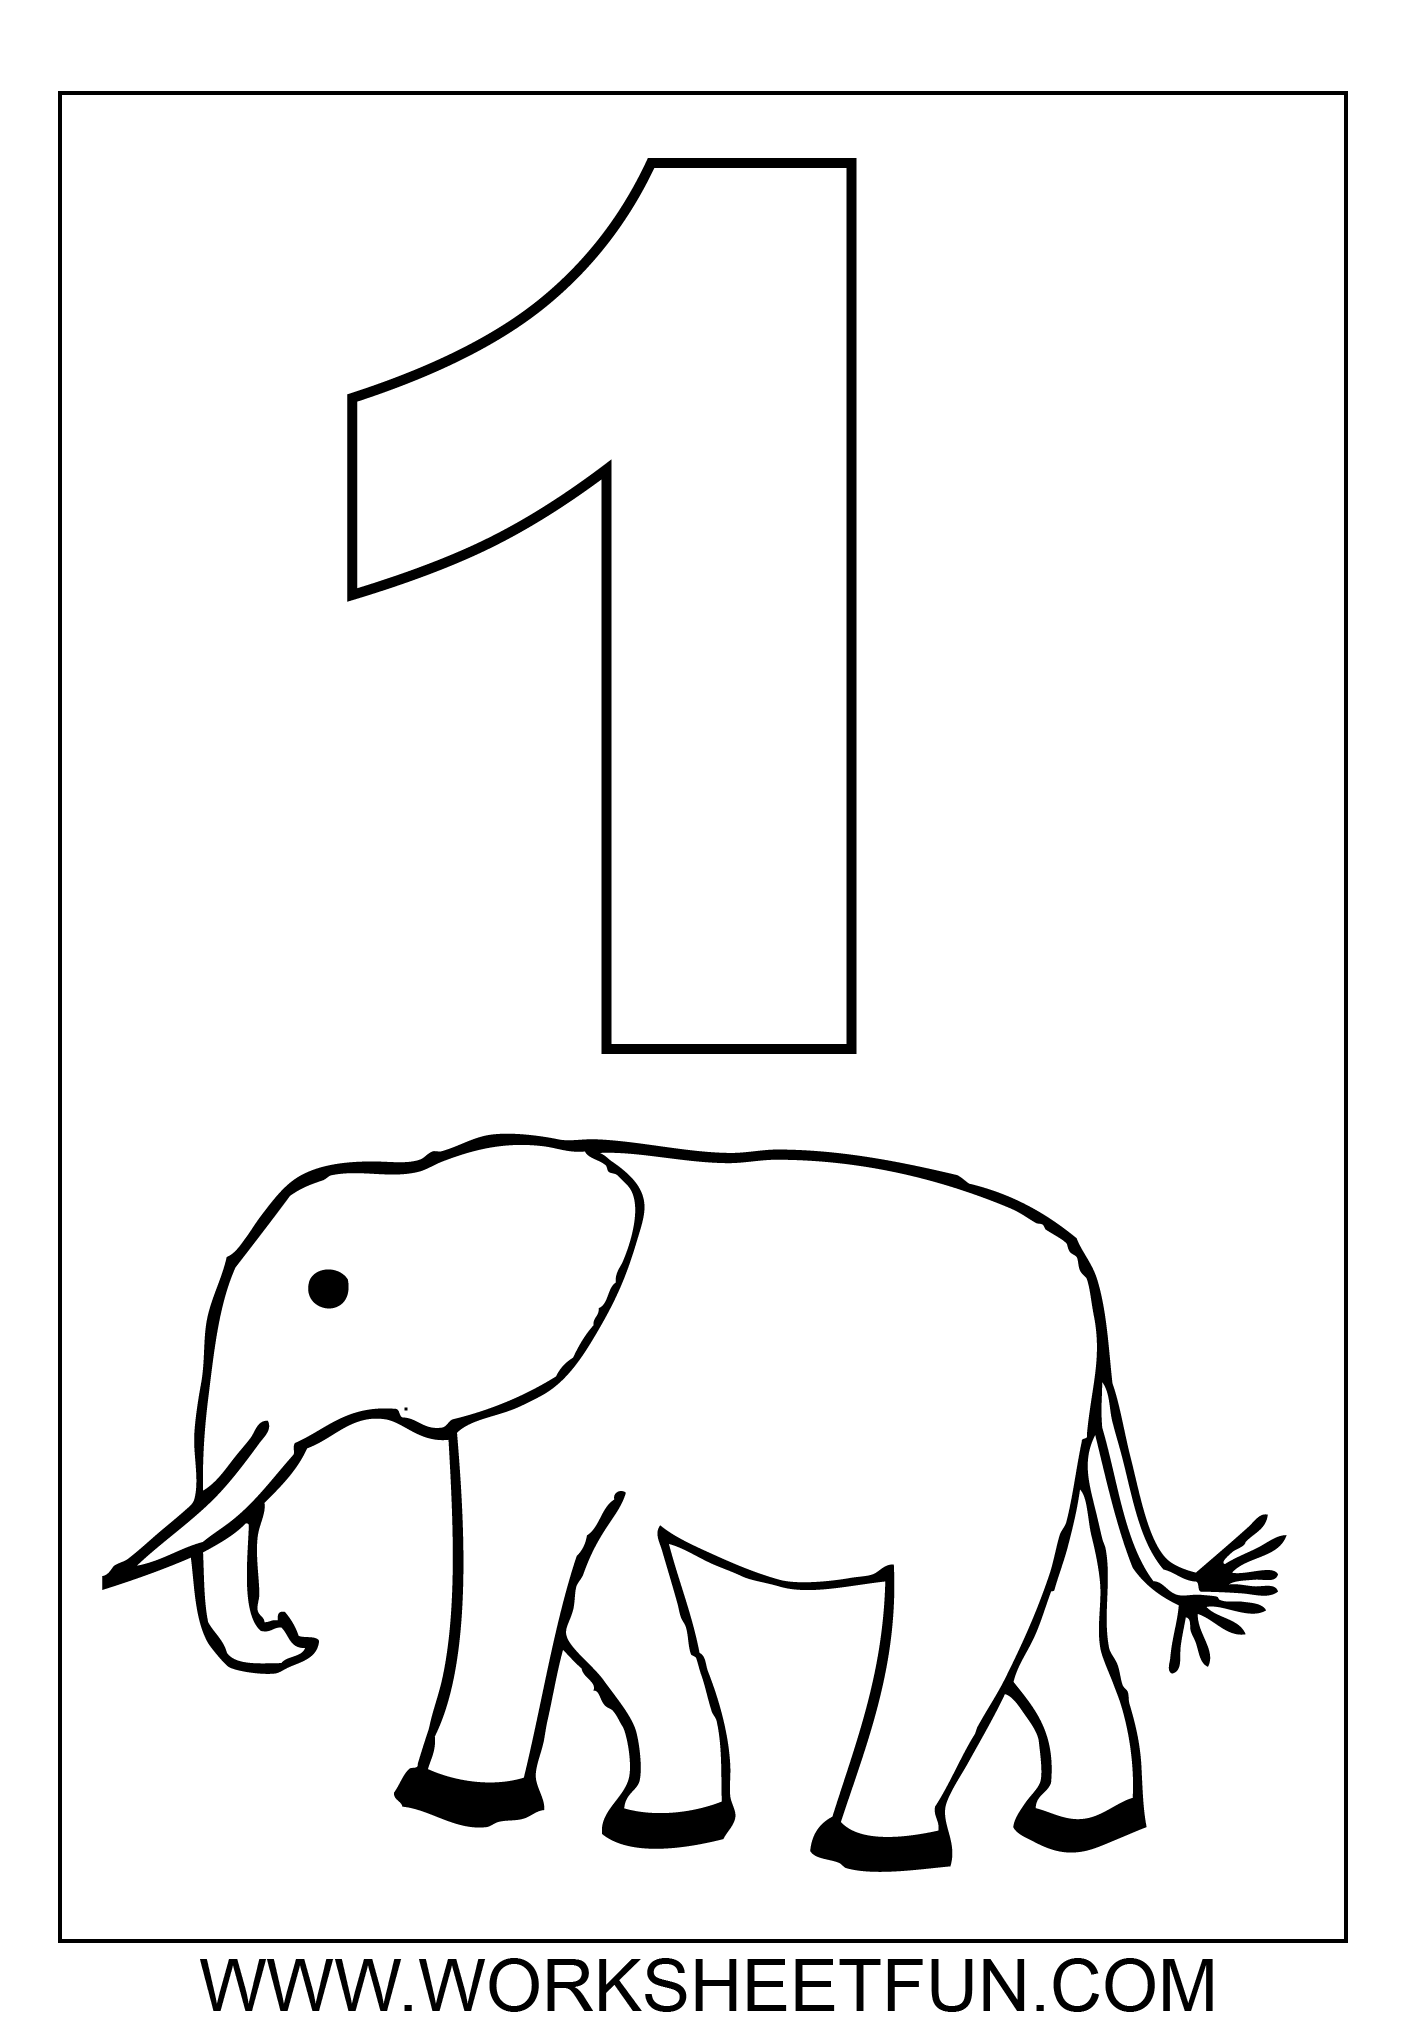 Number 10 Printable Worksheet